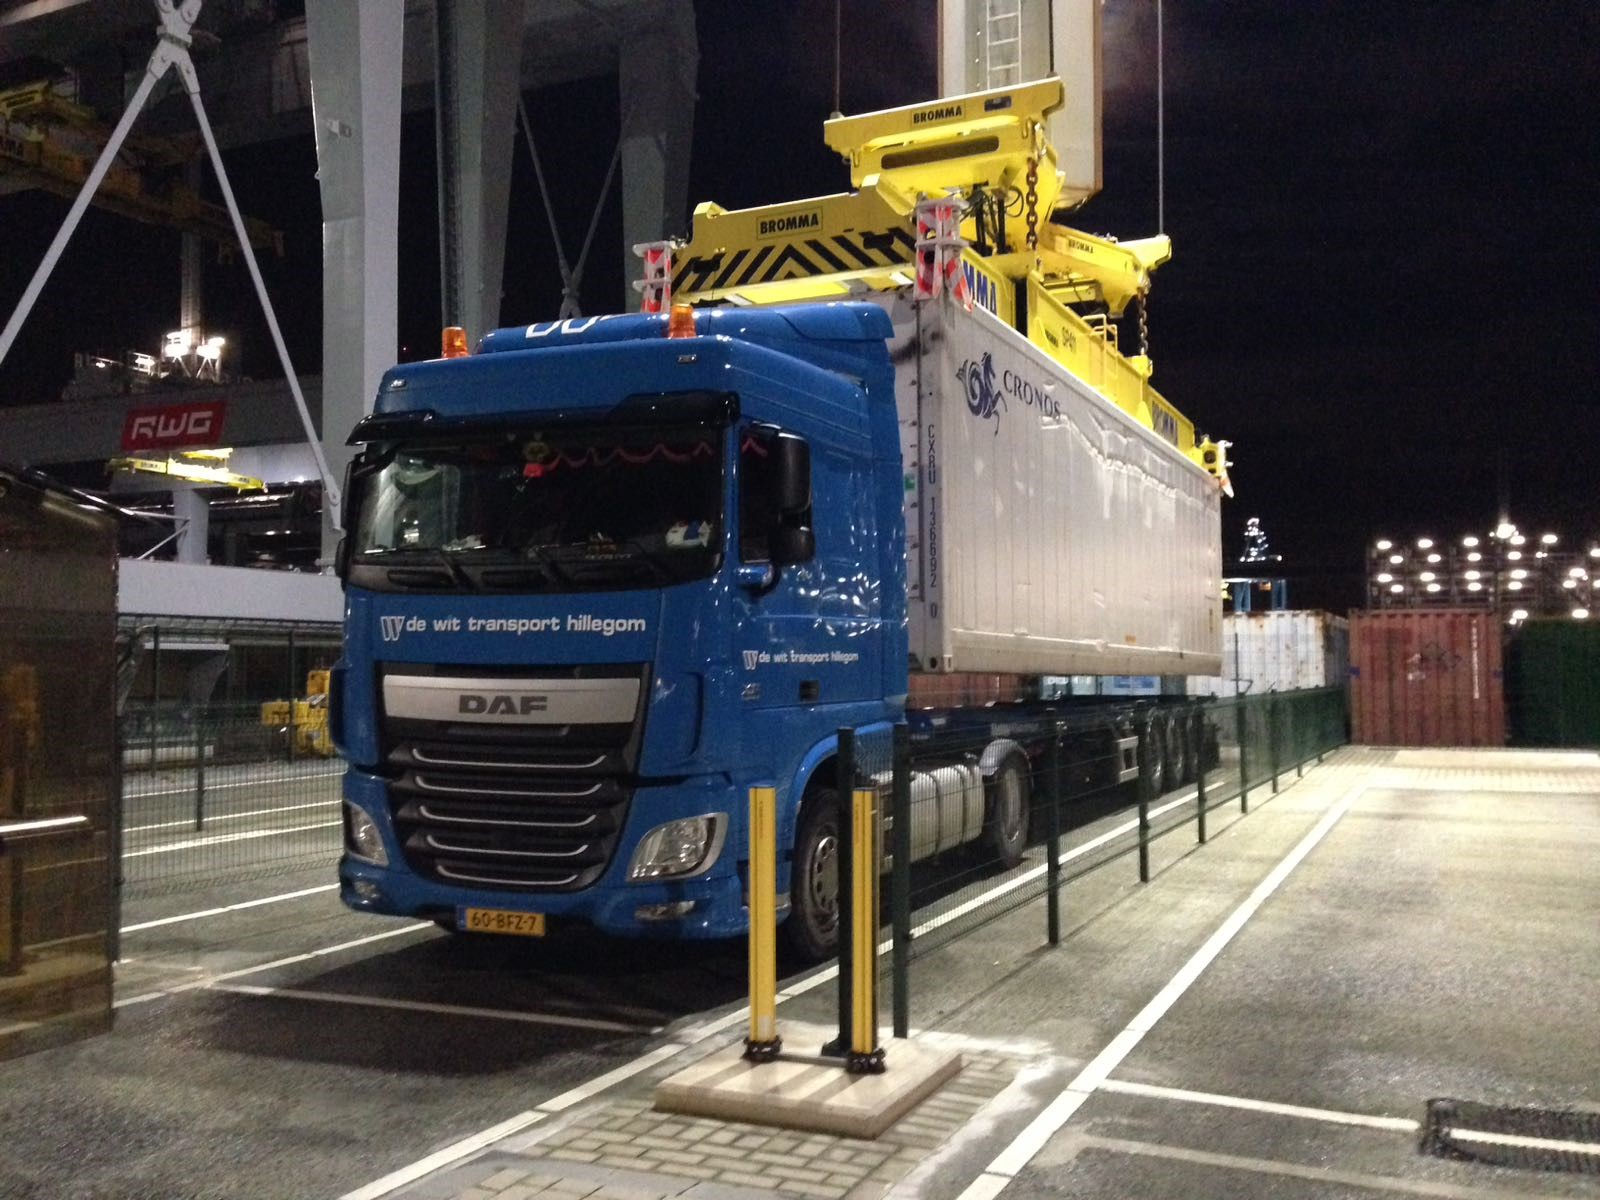 De wit container transport